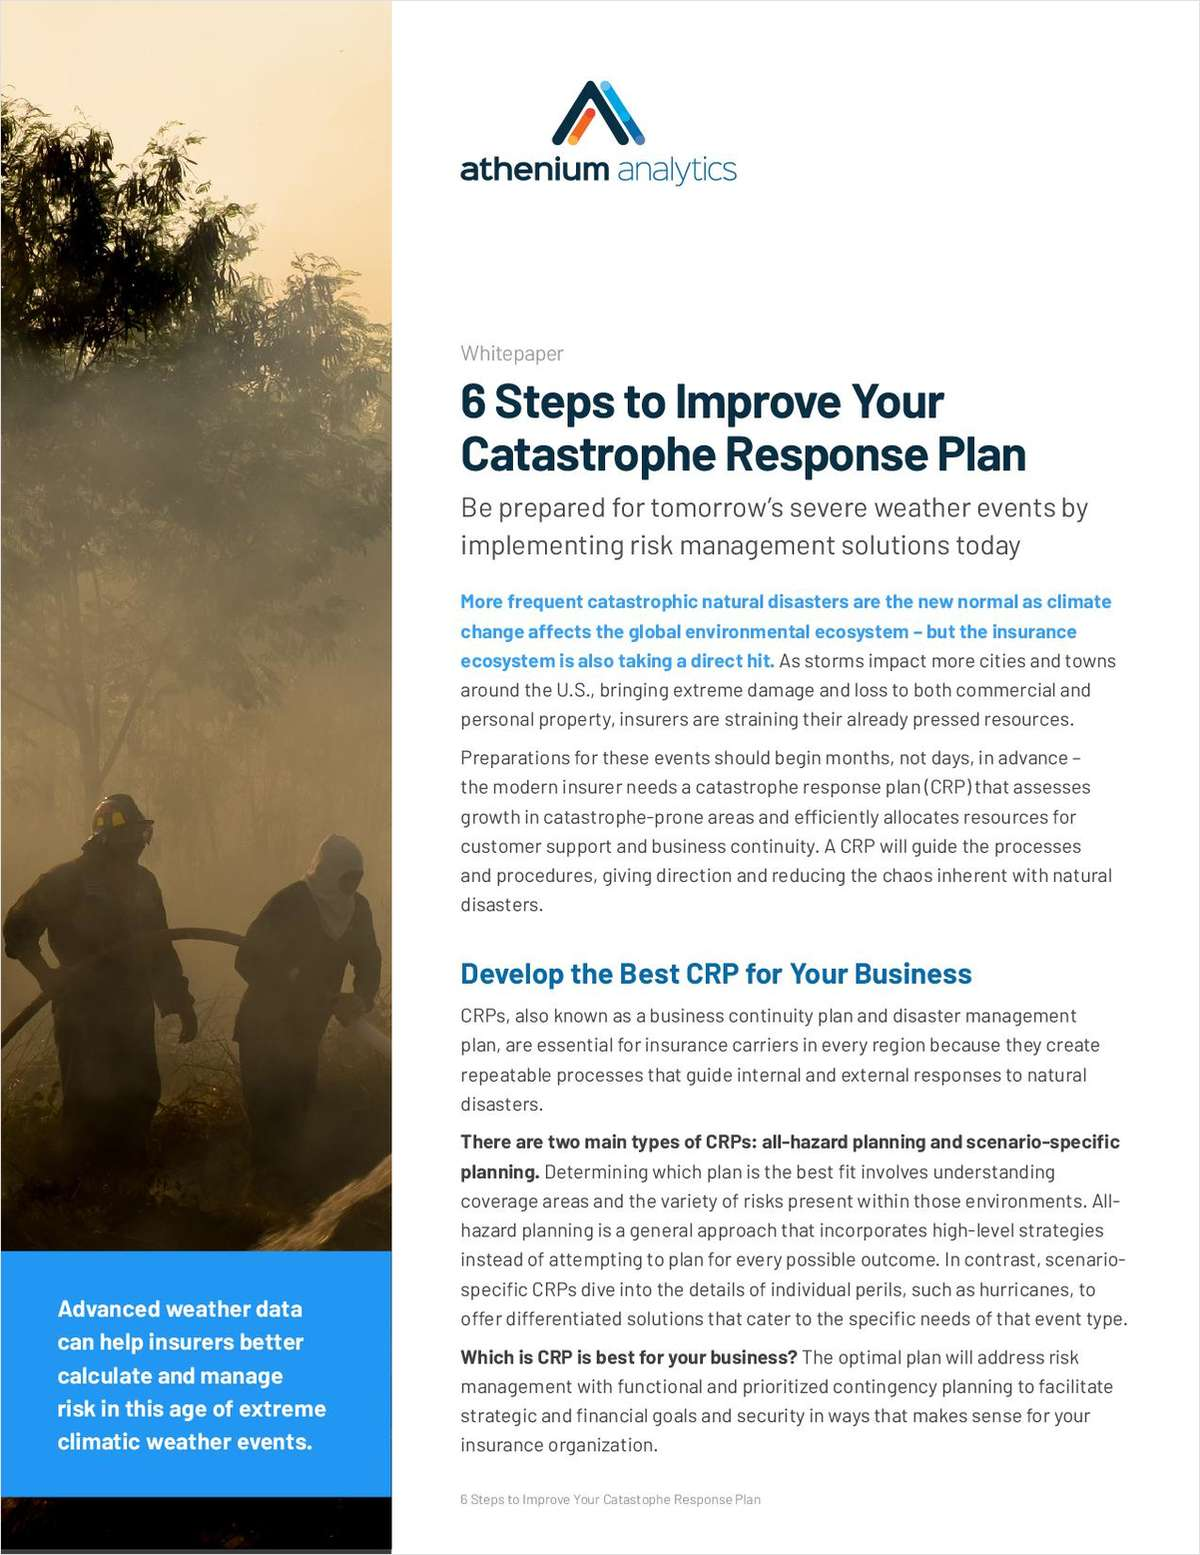 6 Steps to Improve Your Catastrophe Response Plan